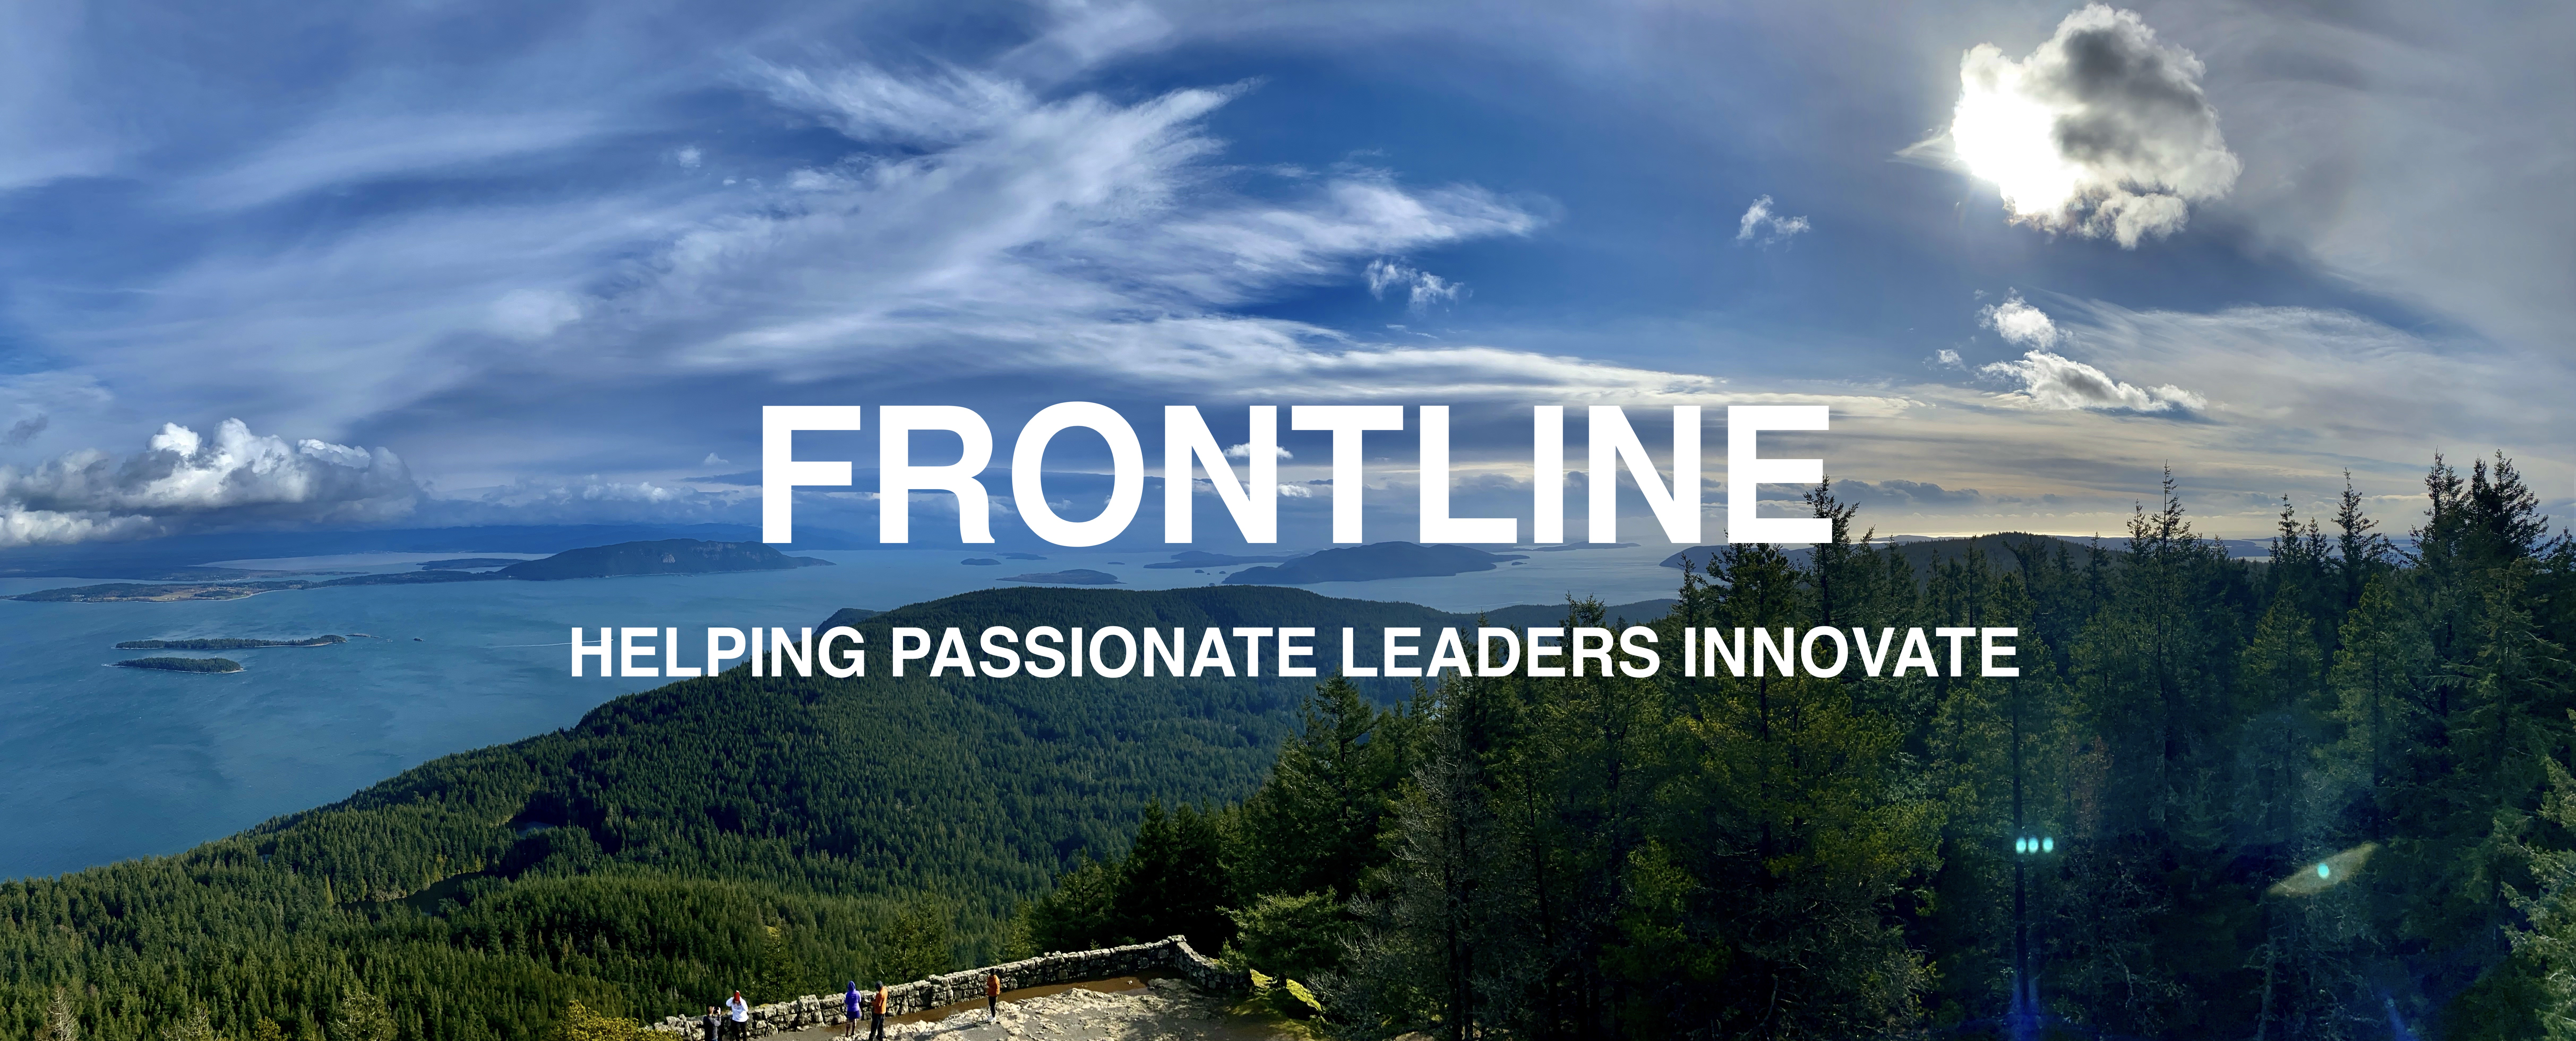 Frontline Group Banner Helping Passionate Leaders Innovate